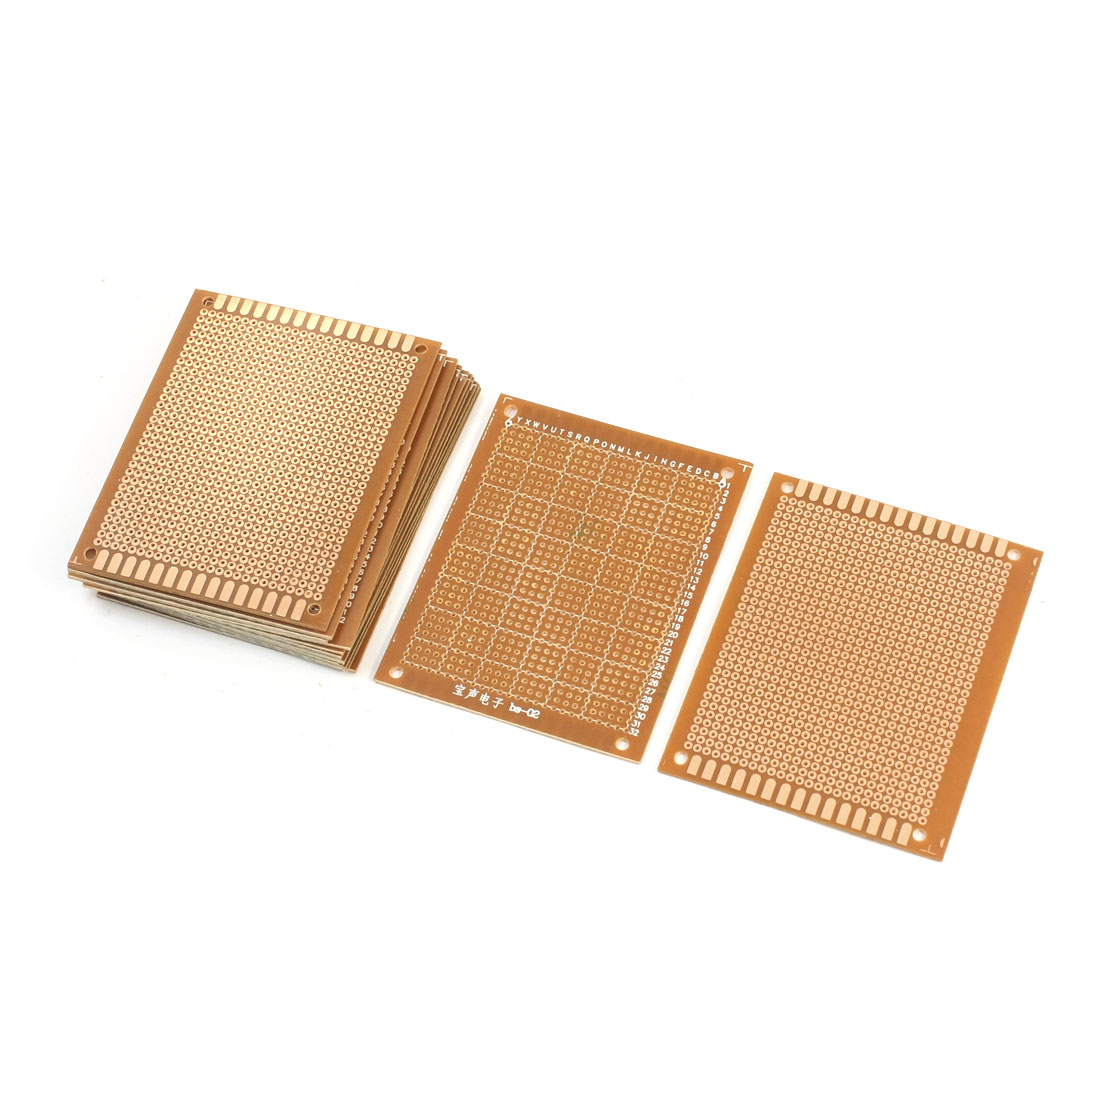 15Pcs Bakelite Single Side Copper Prototype PCB Matrix Board 9cmx7cm